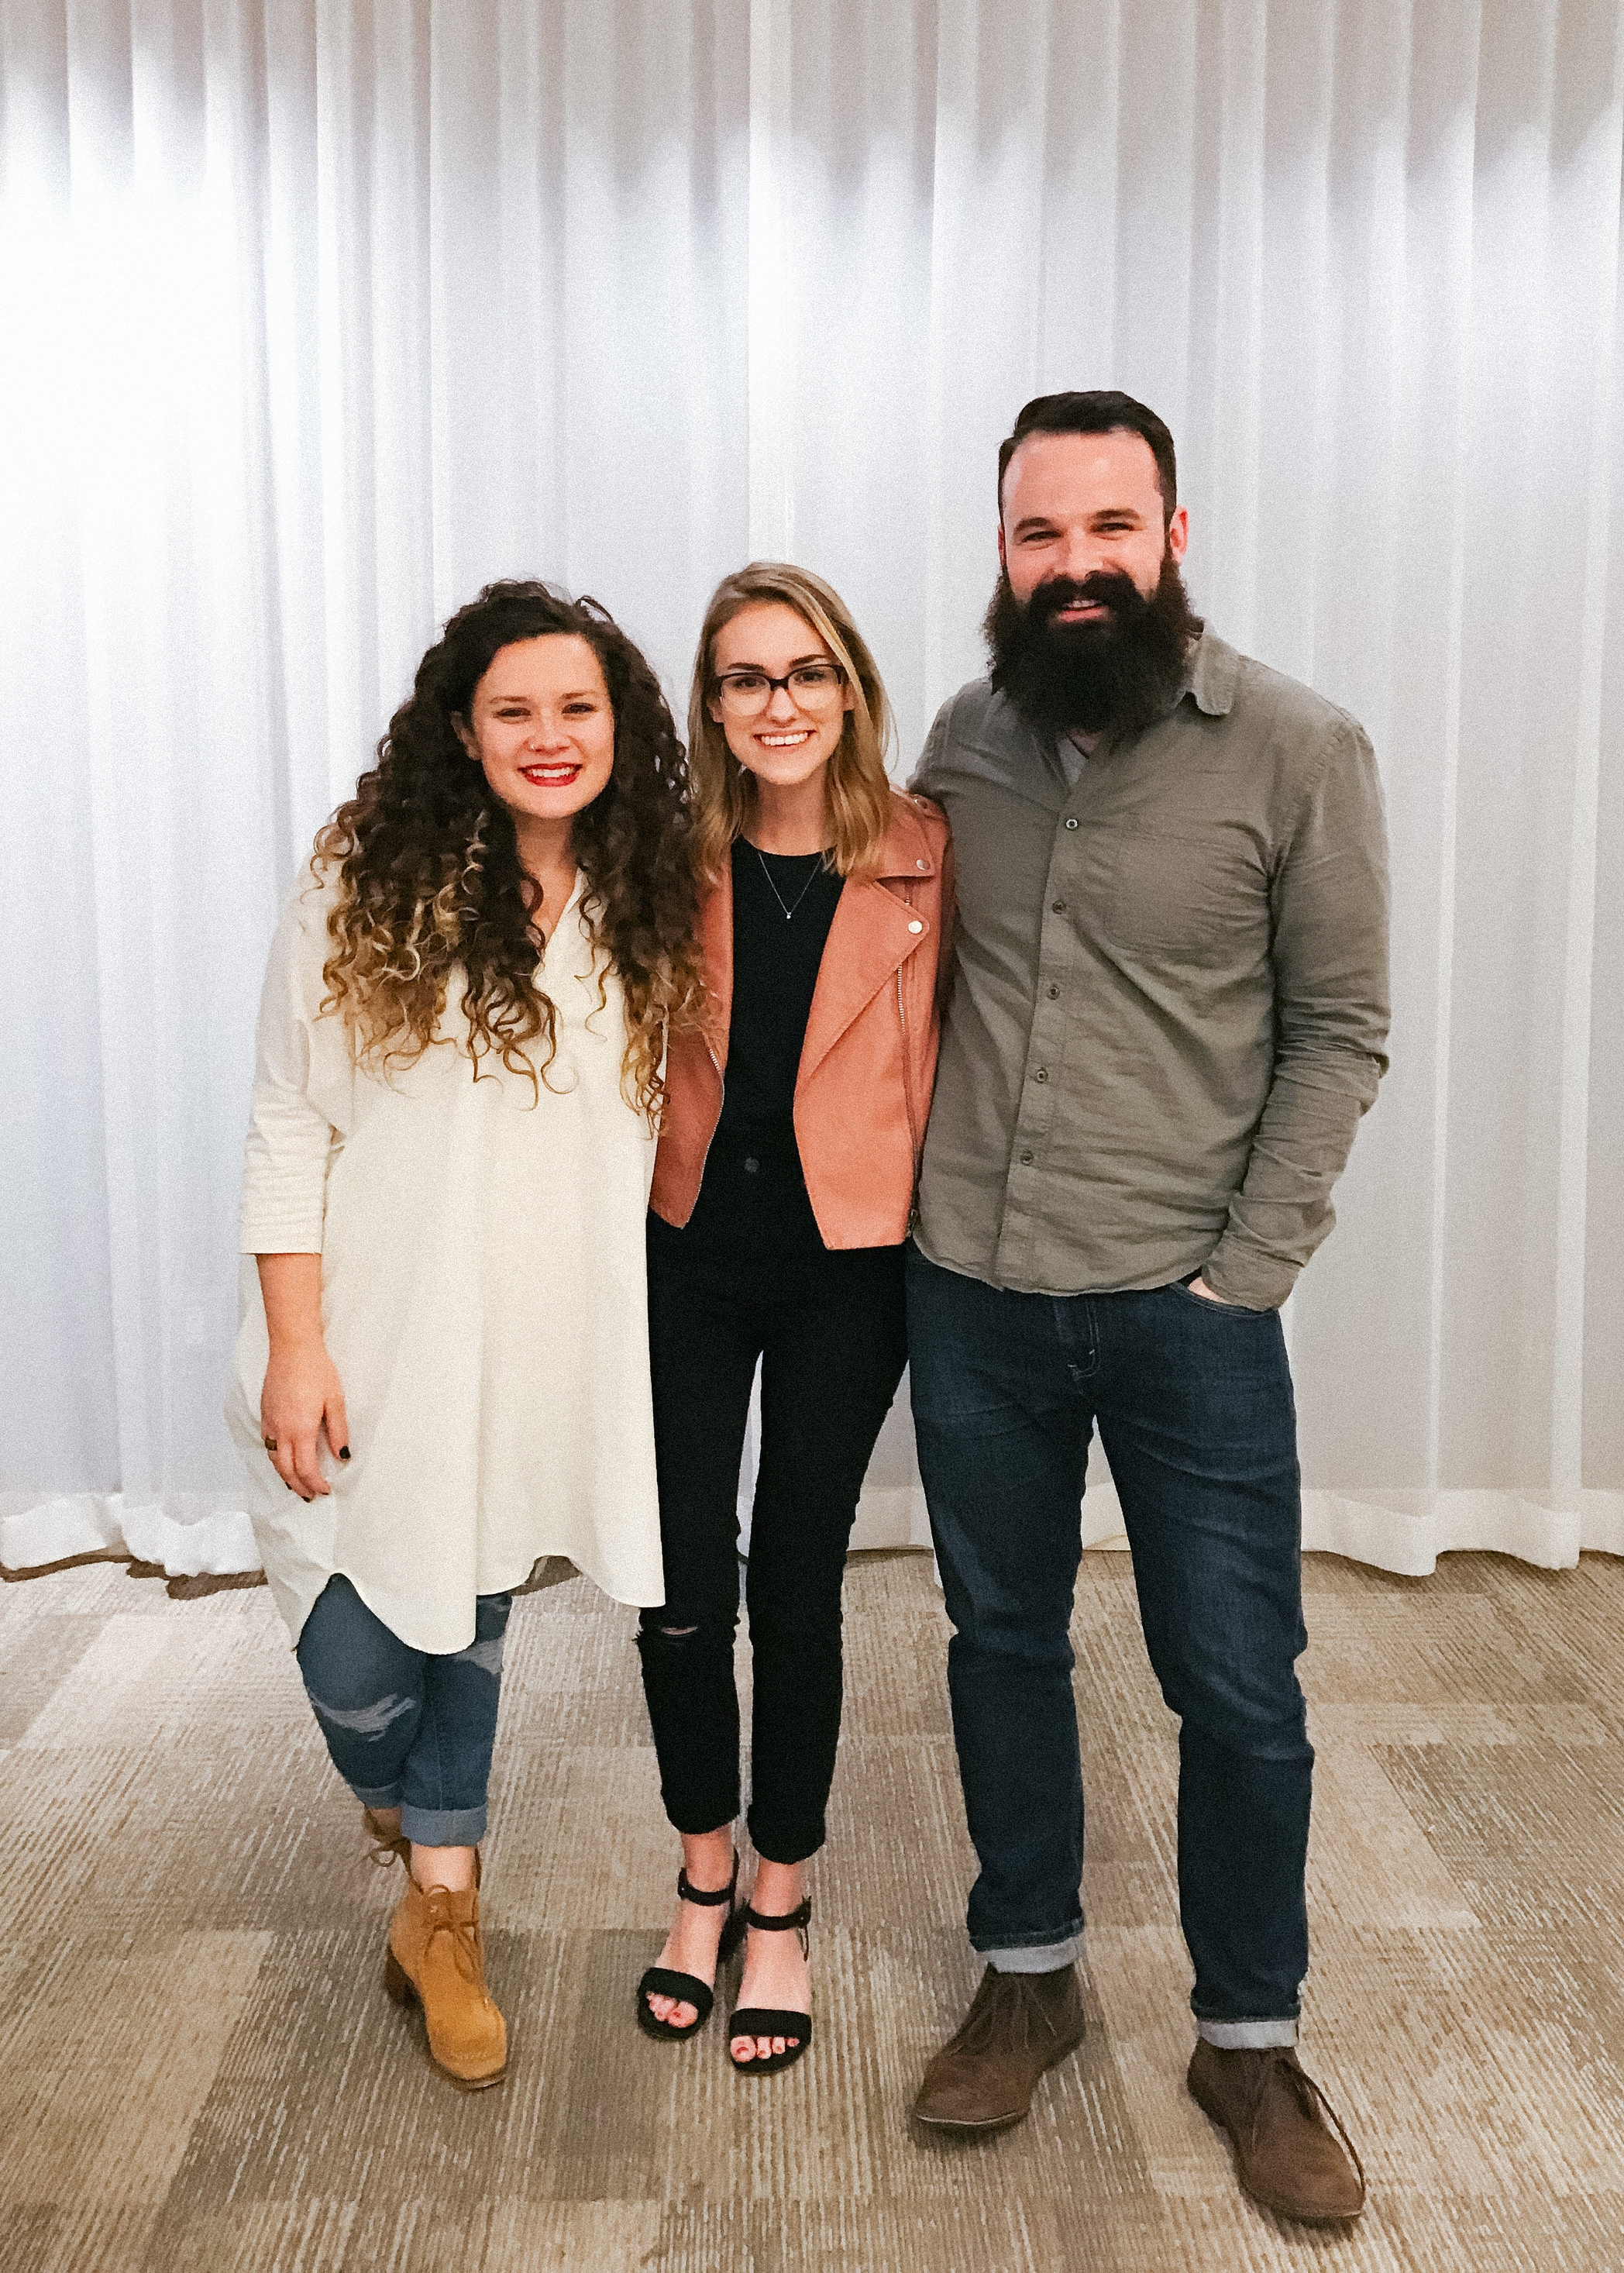 - Karissa,We loved having you as part of our team and we're so excited about what the future holds for you.Thank you for your friendship and your sweet spirit. We love ya girl!- Jake & Katie